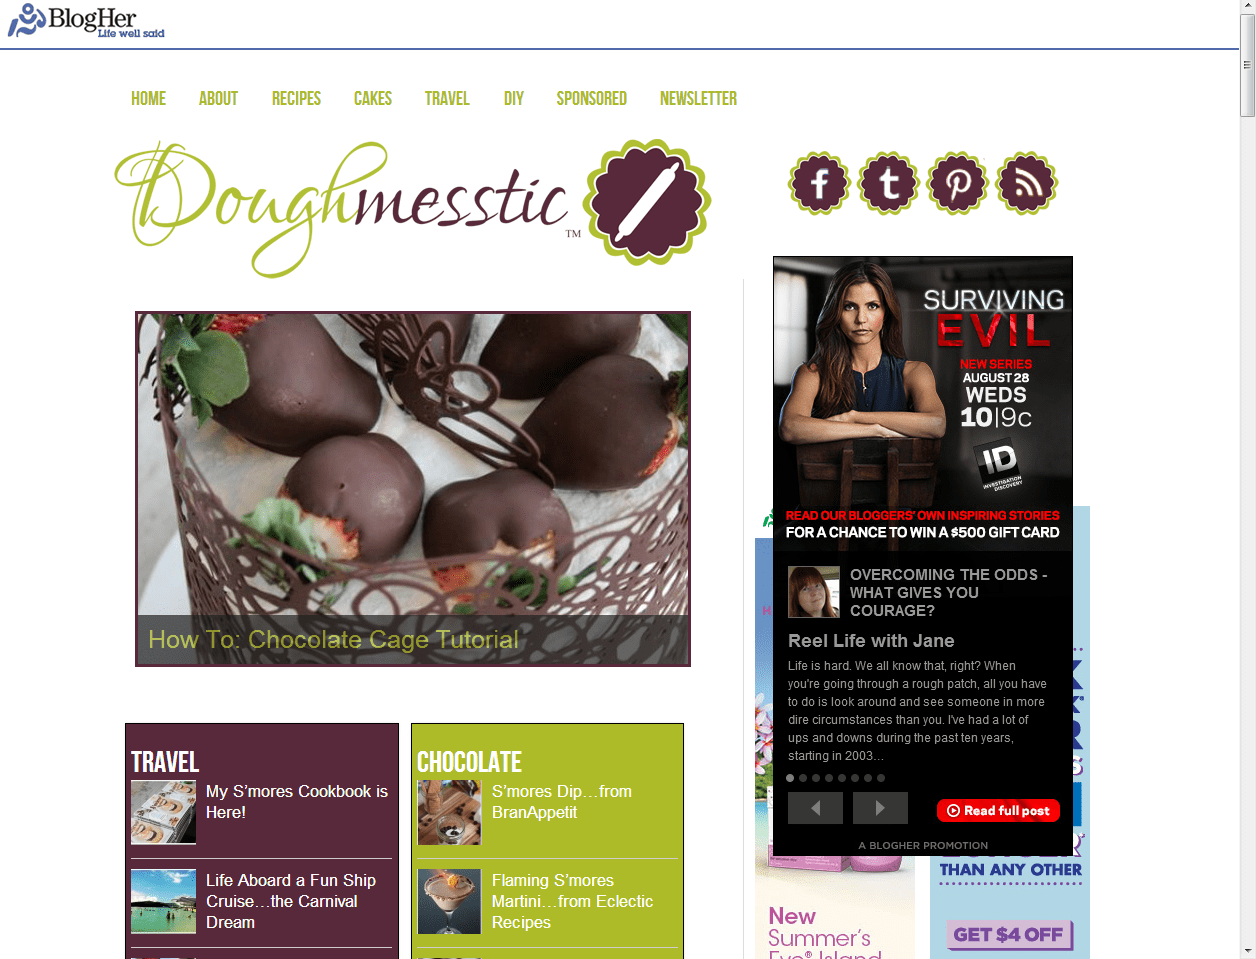 She's Becoming Doughmesstic Website redesign